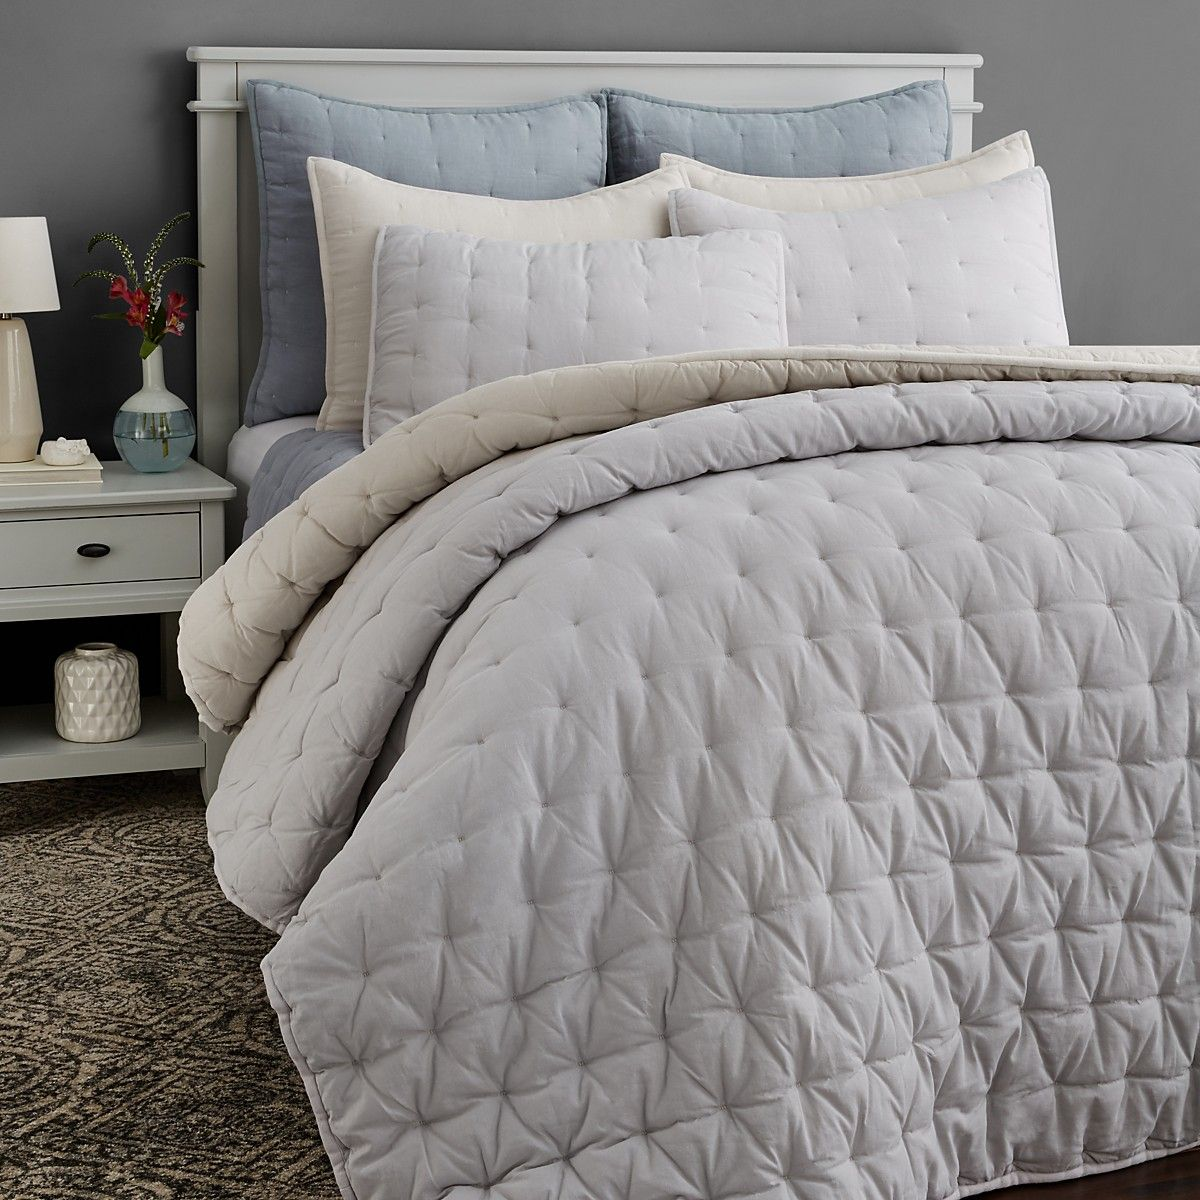 ugg® lofty linen collection  east hills  master bedding  - ugg® lofty linen collection comforterbeddingexterior designlinens